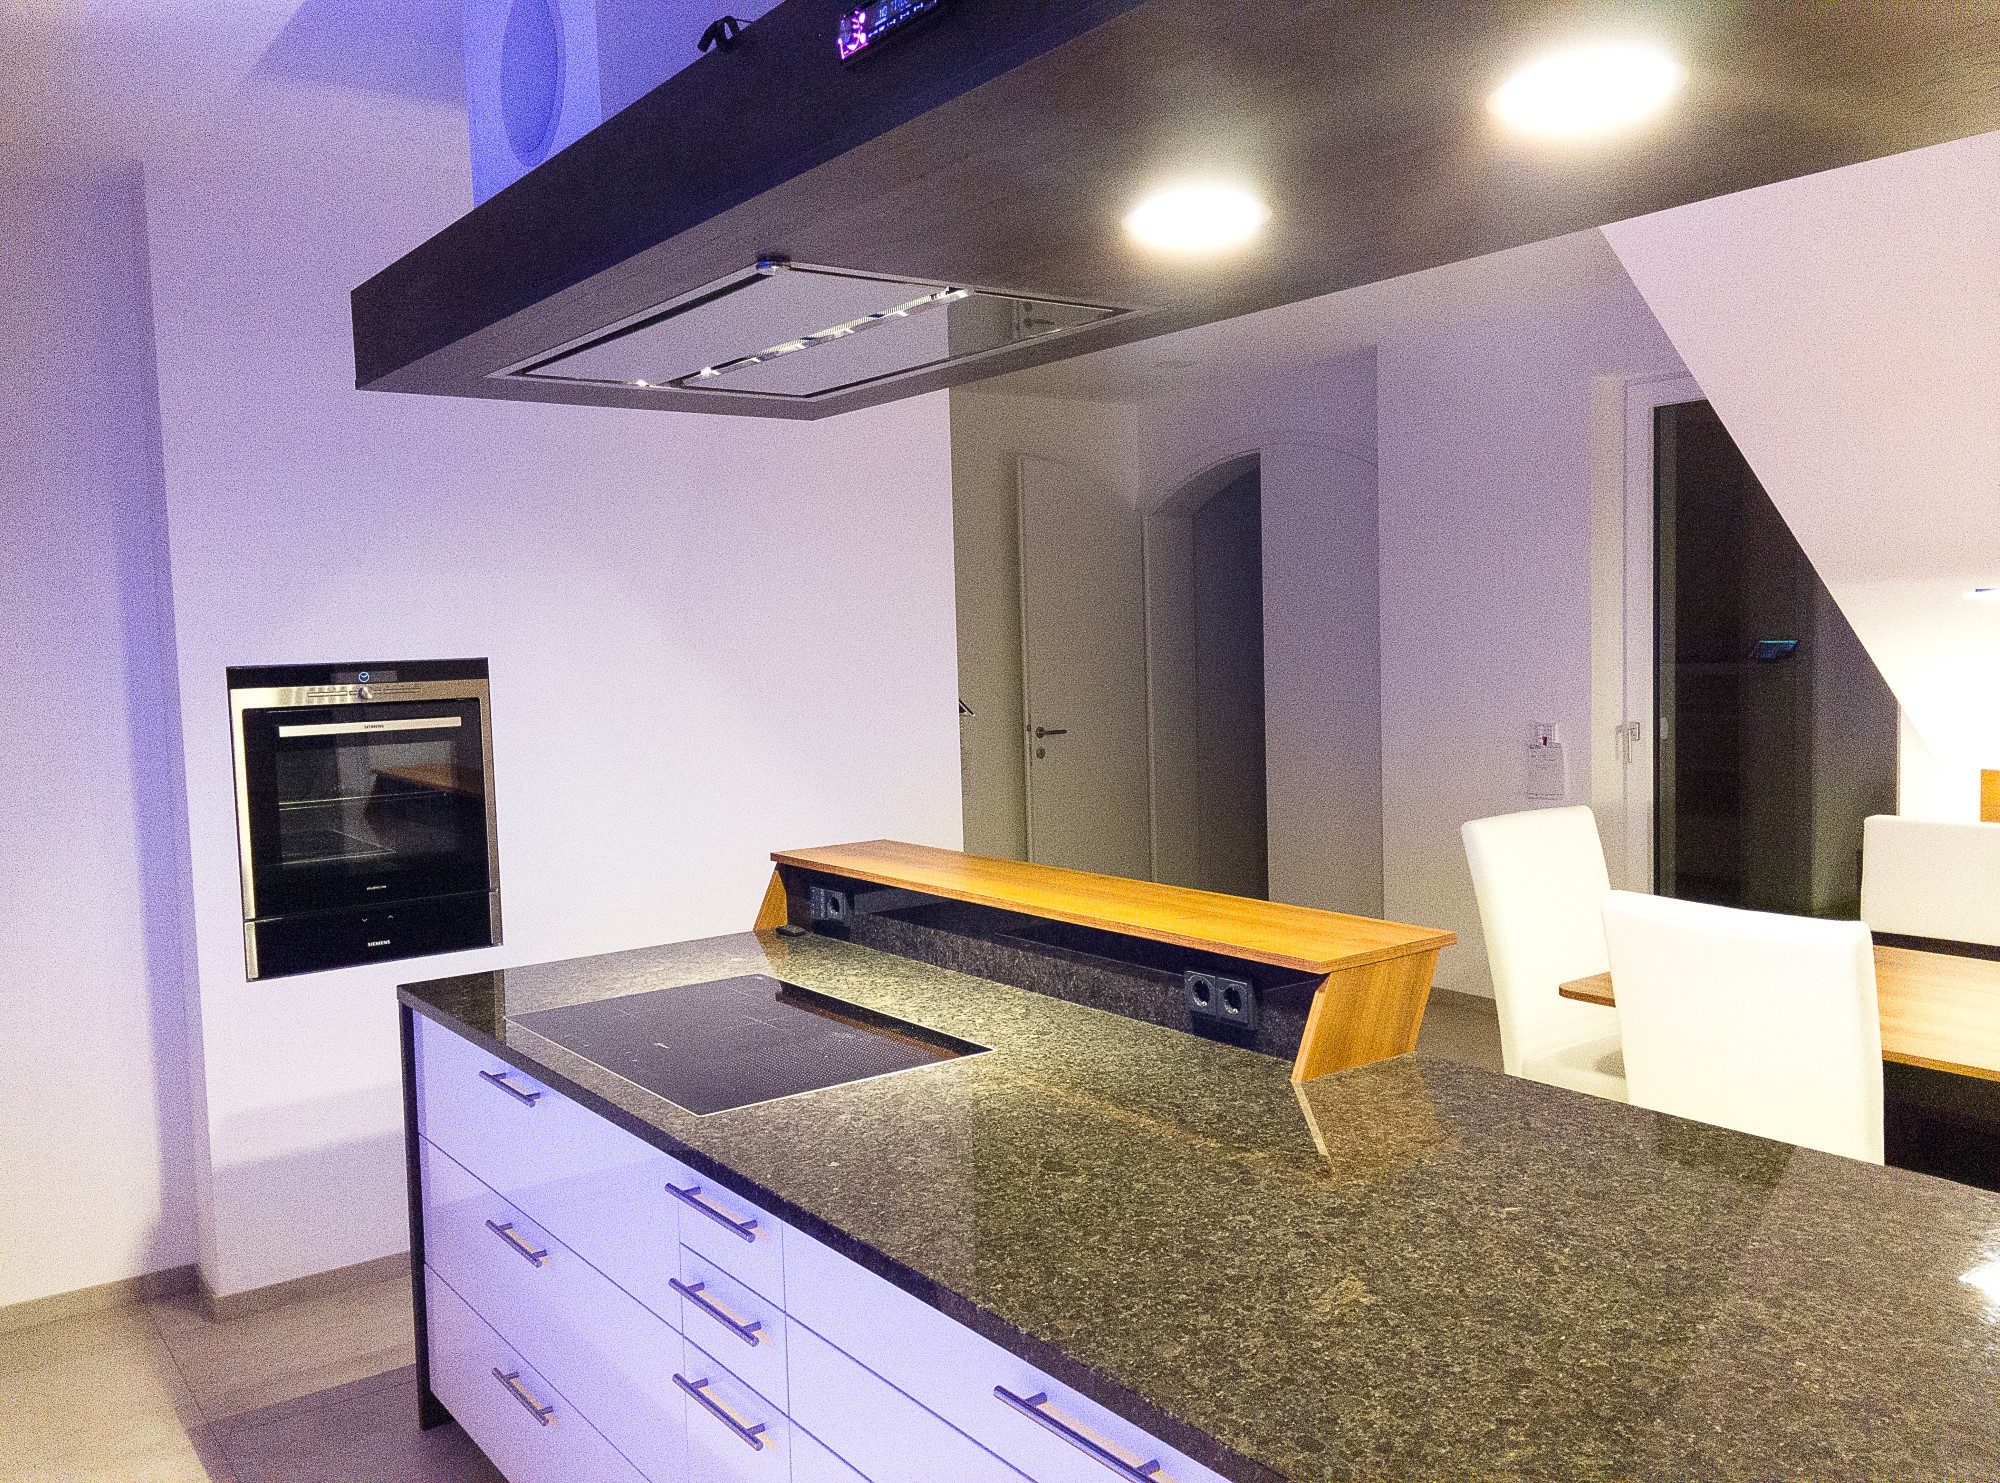 Cubic Kitchen design (6)